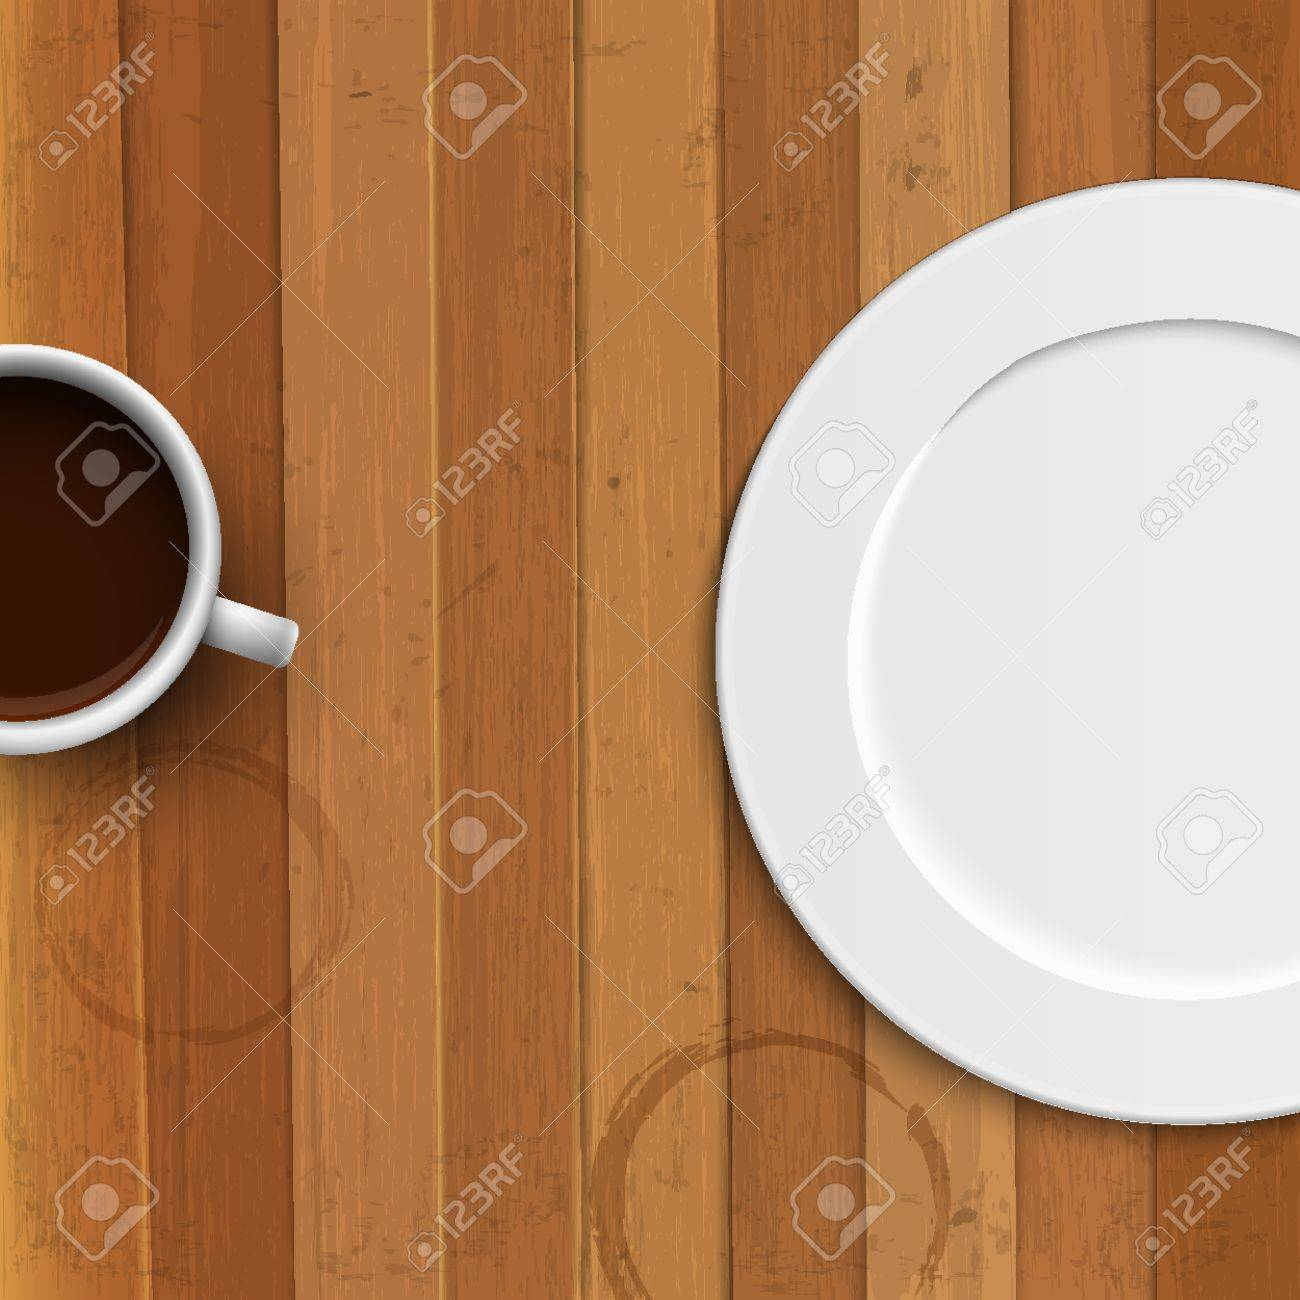 Dinner plate and coffee cup on wooden background. Vector illustration Stock Vector - 17755134